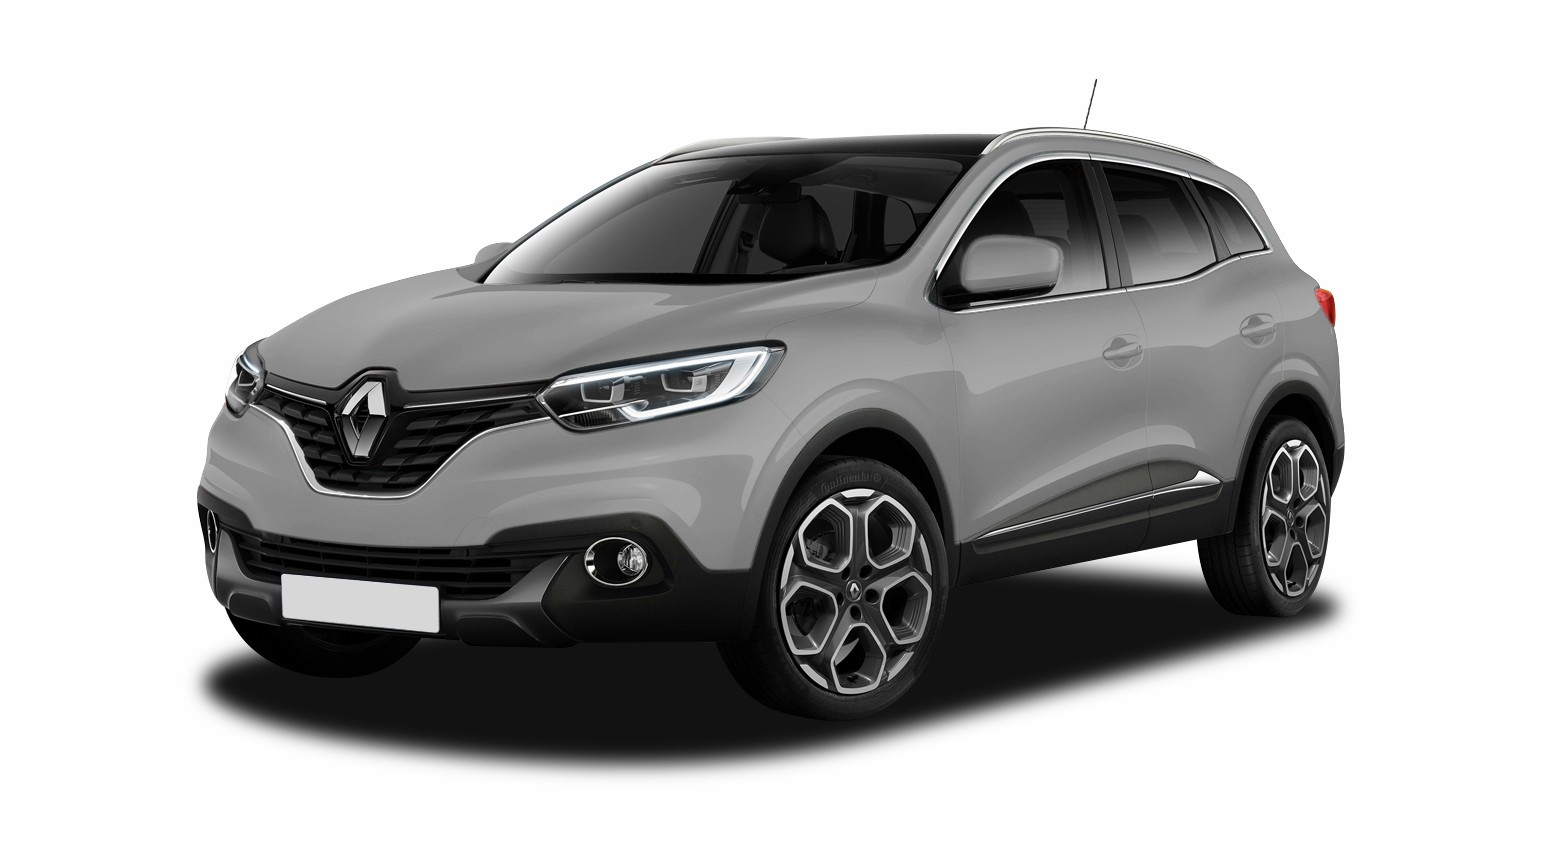 renault kadjar 4x2 et suv 5 portes diesel 1 6 dci. Black Bedroom Furniture Sets. Home Design Ideas